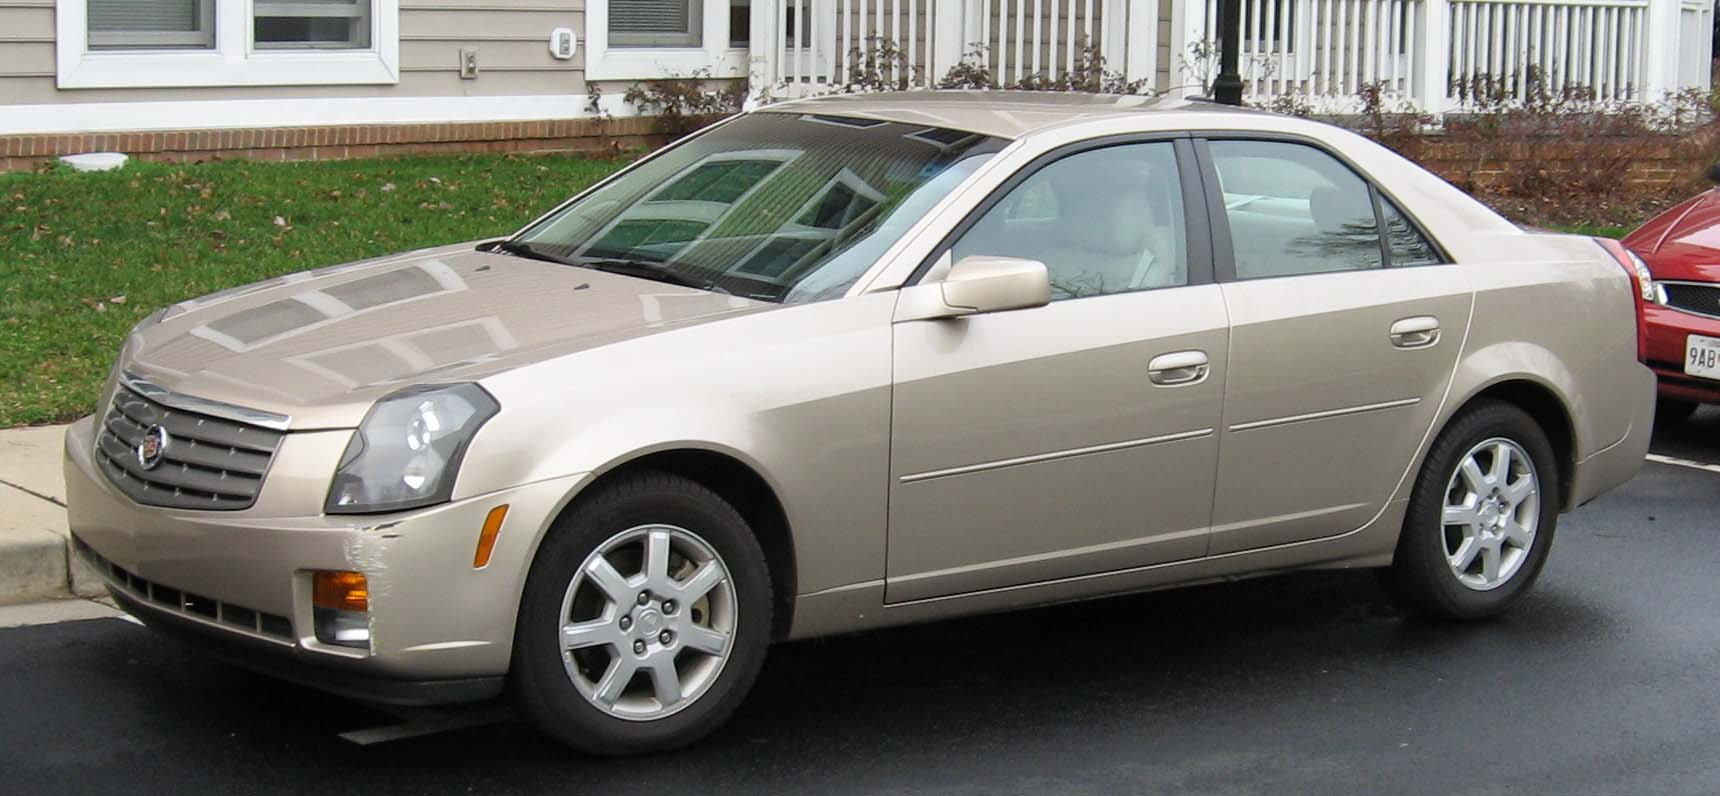 Cadillac CTS 2003: Review, Amazing Pictures and Images – Look at